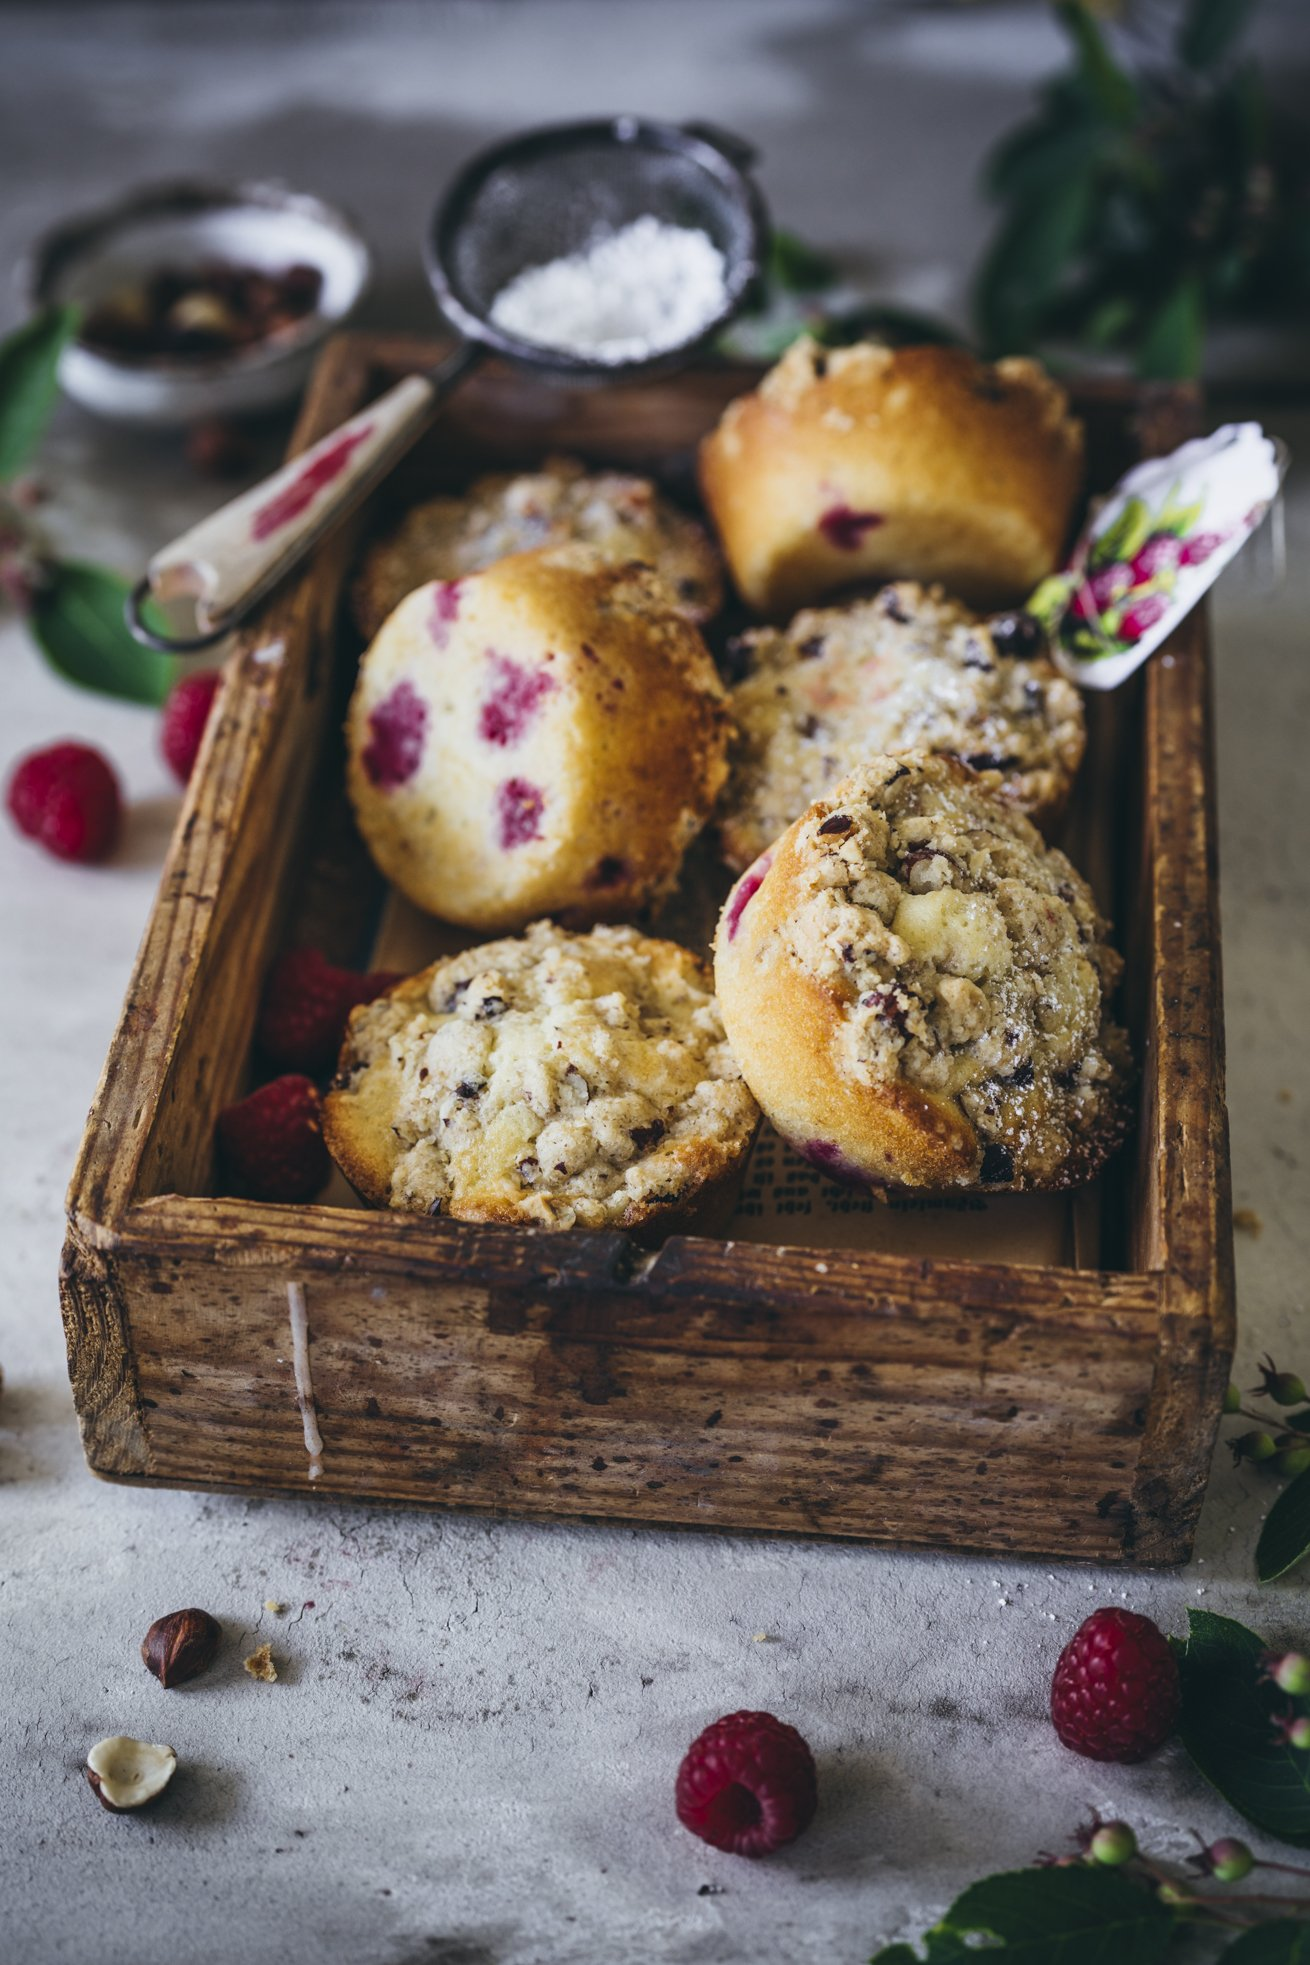 Himbeer Muffins mit Haselnuss Streuseln